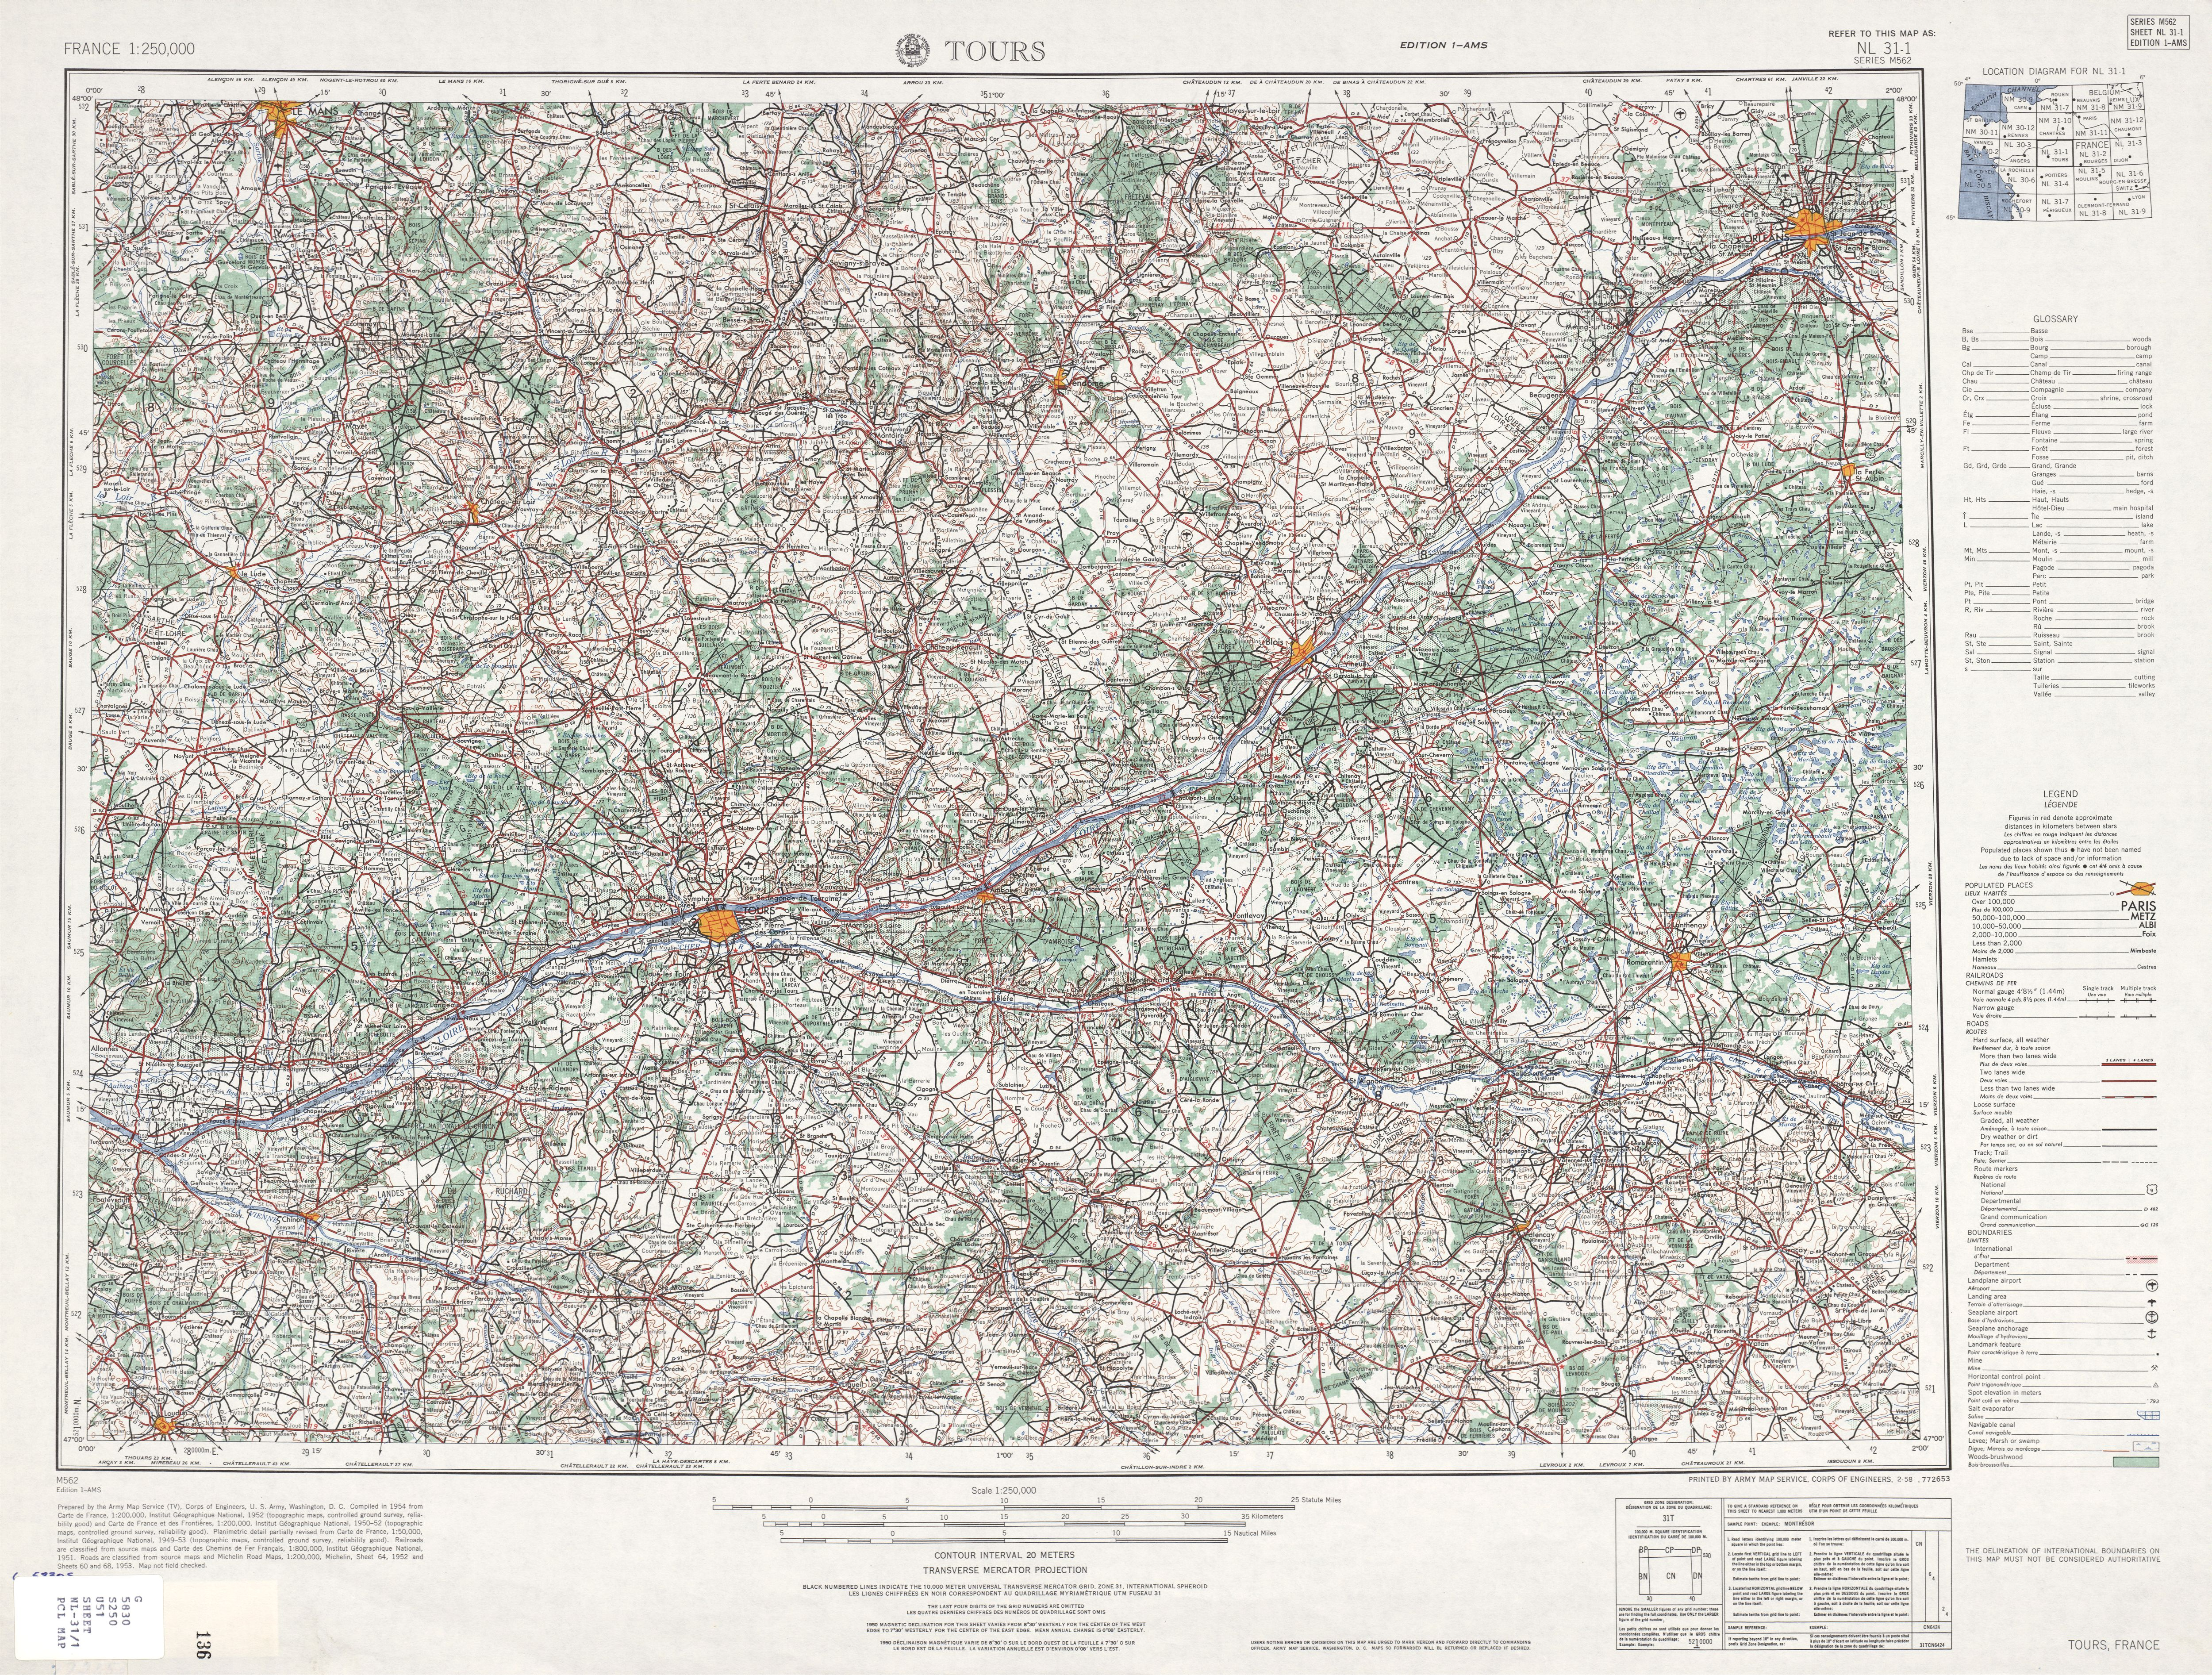 France Ams Topographic Maps Perry Castaneda Map Collection Ut